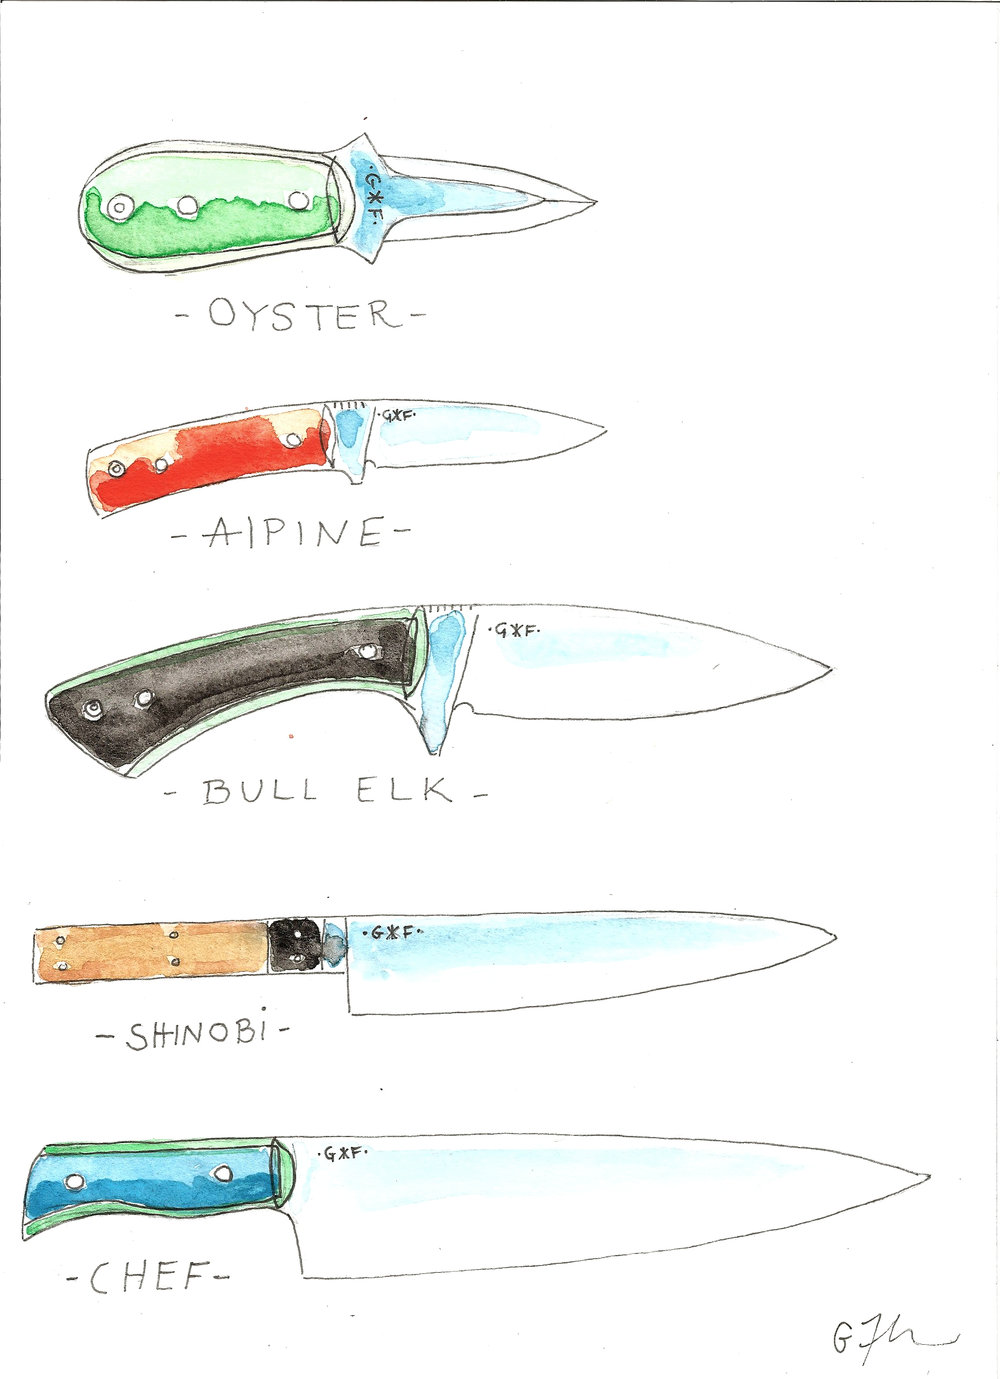 the profile - shape & style of your knife